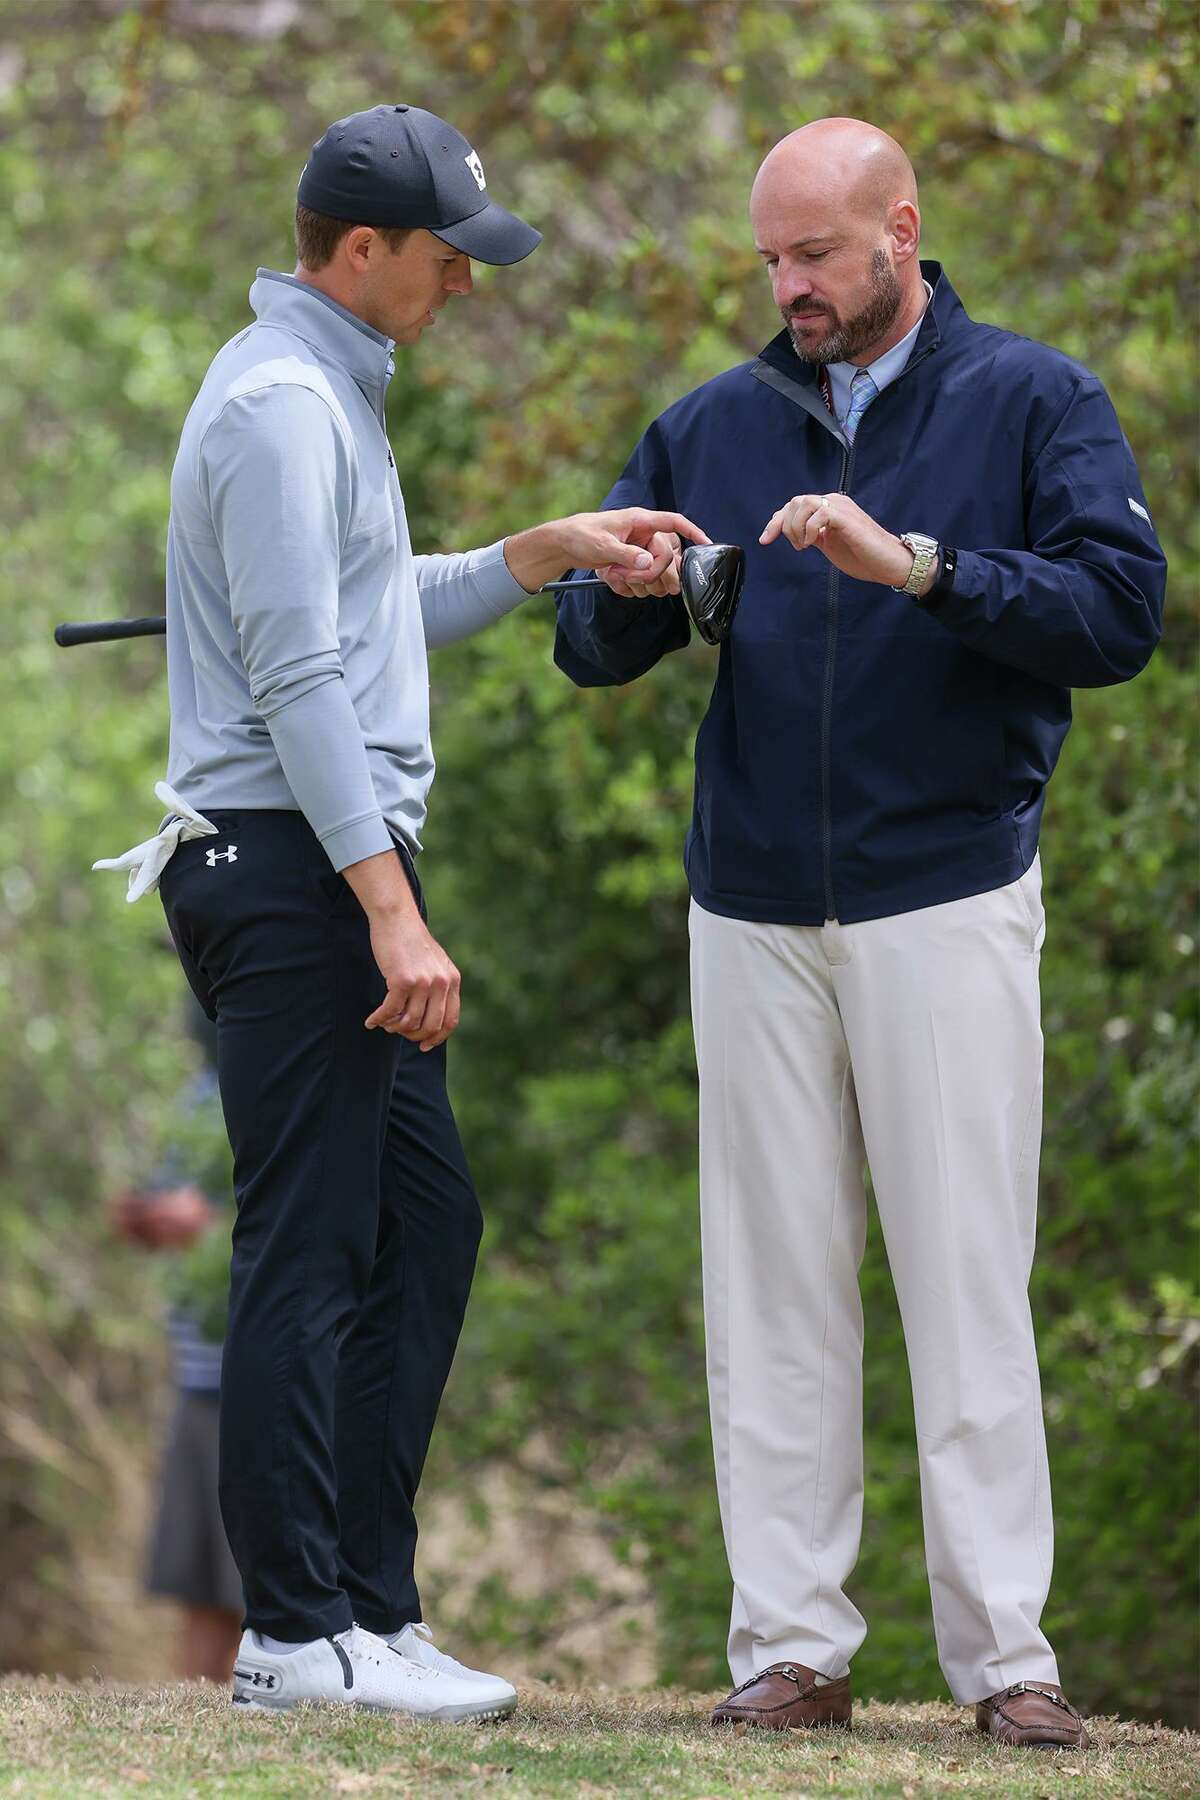 Jordan Spieth talks to a course official about his driver before teeing off on No. 1 during the final round of the Valero Texas Open at the TPC San Antonio - AT&T Oaks Course on Sunday, April 4, 2021.